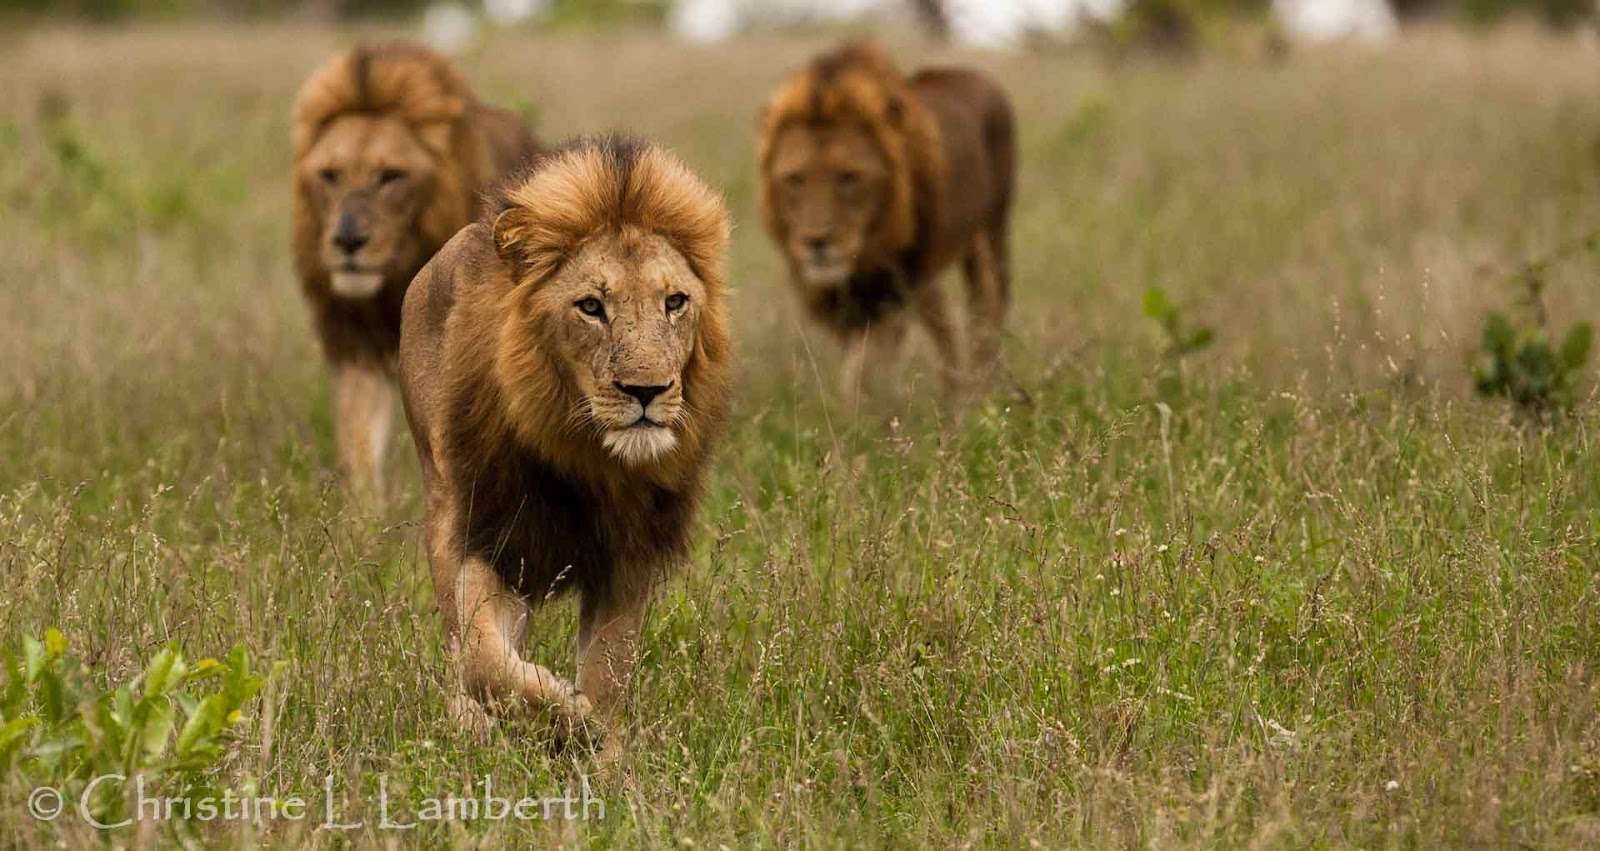 Lions walking together - photo#11